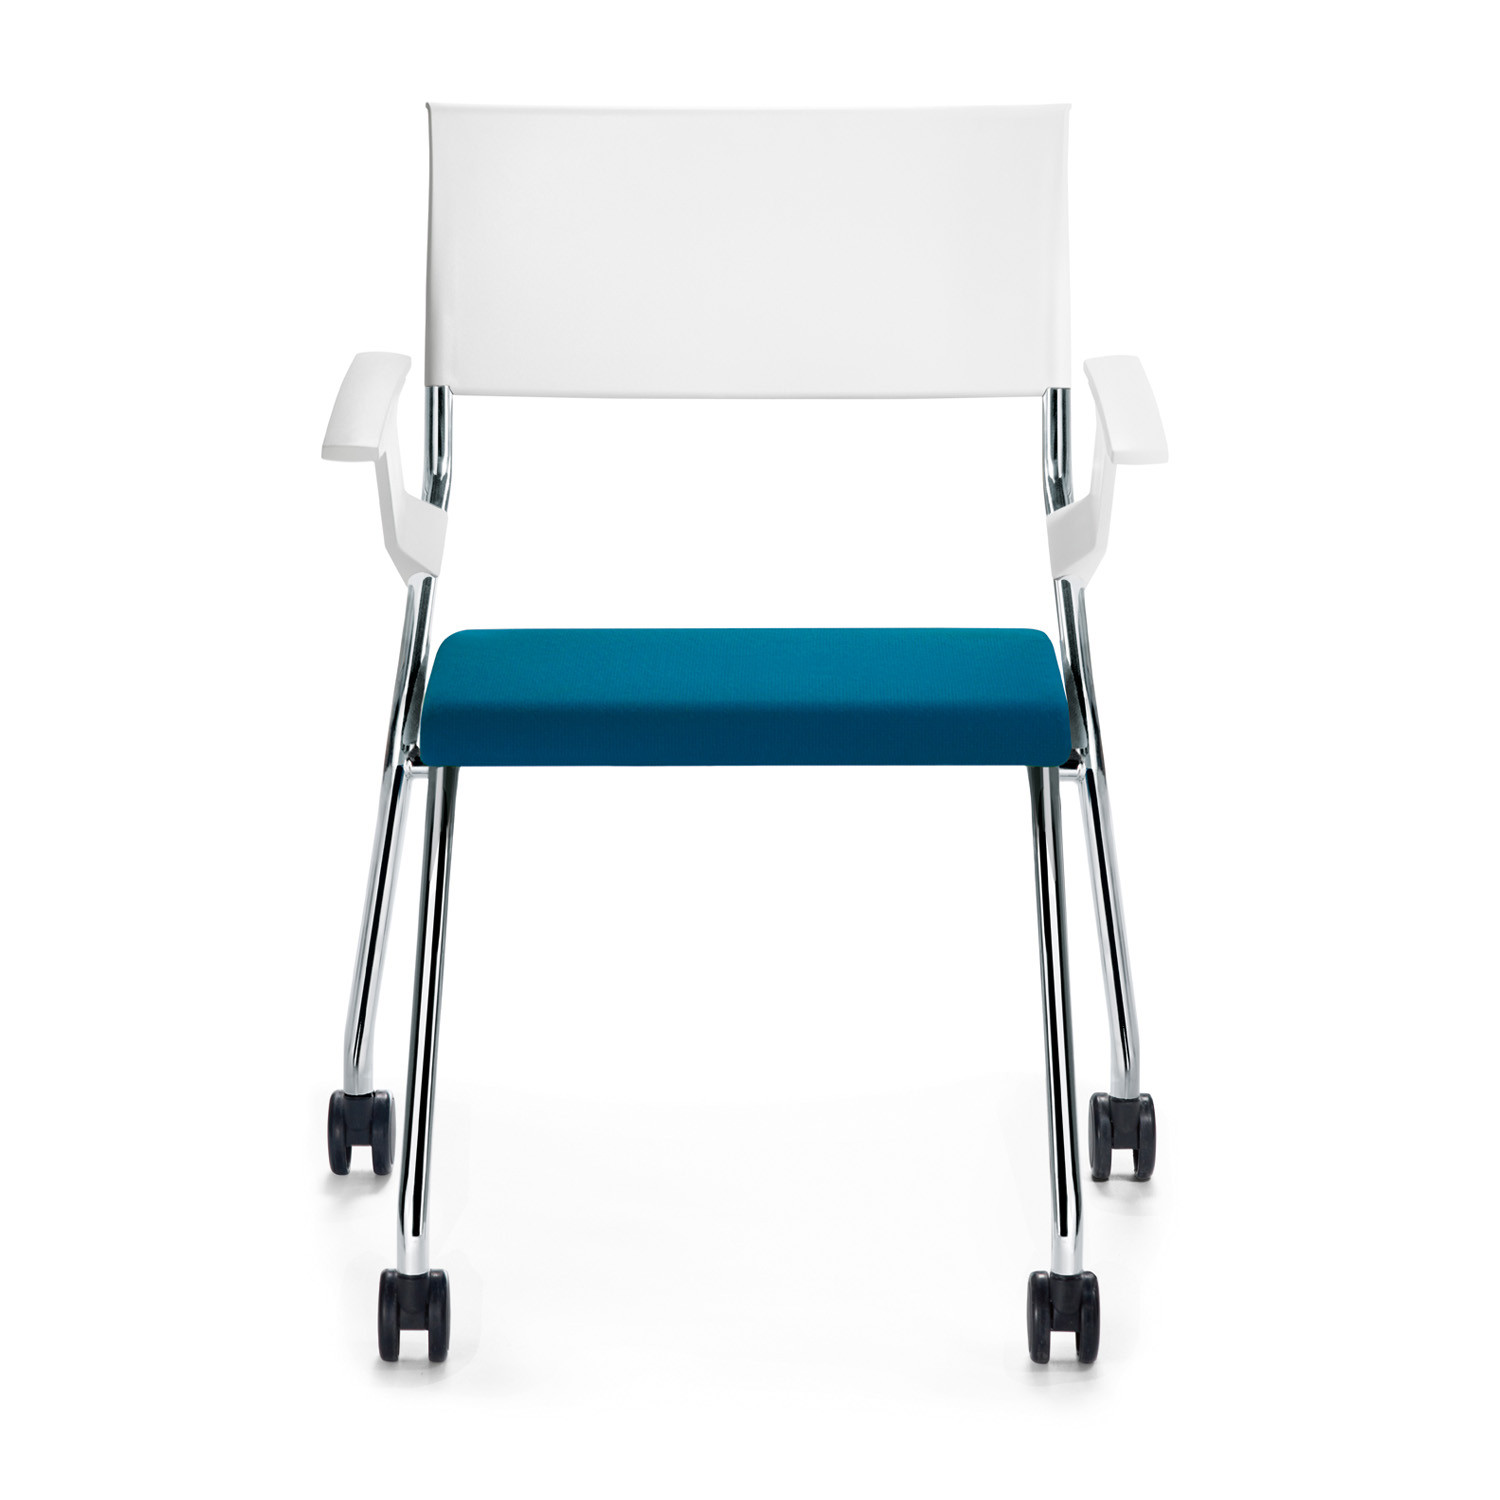 Flip Flap Upholstered Training Chair with armrests